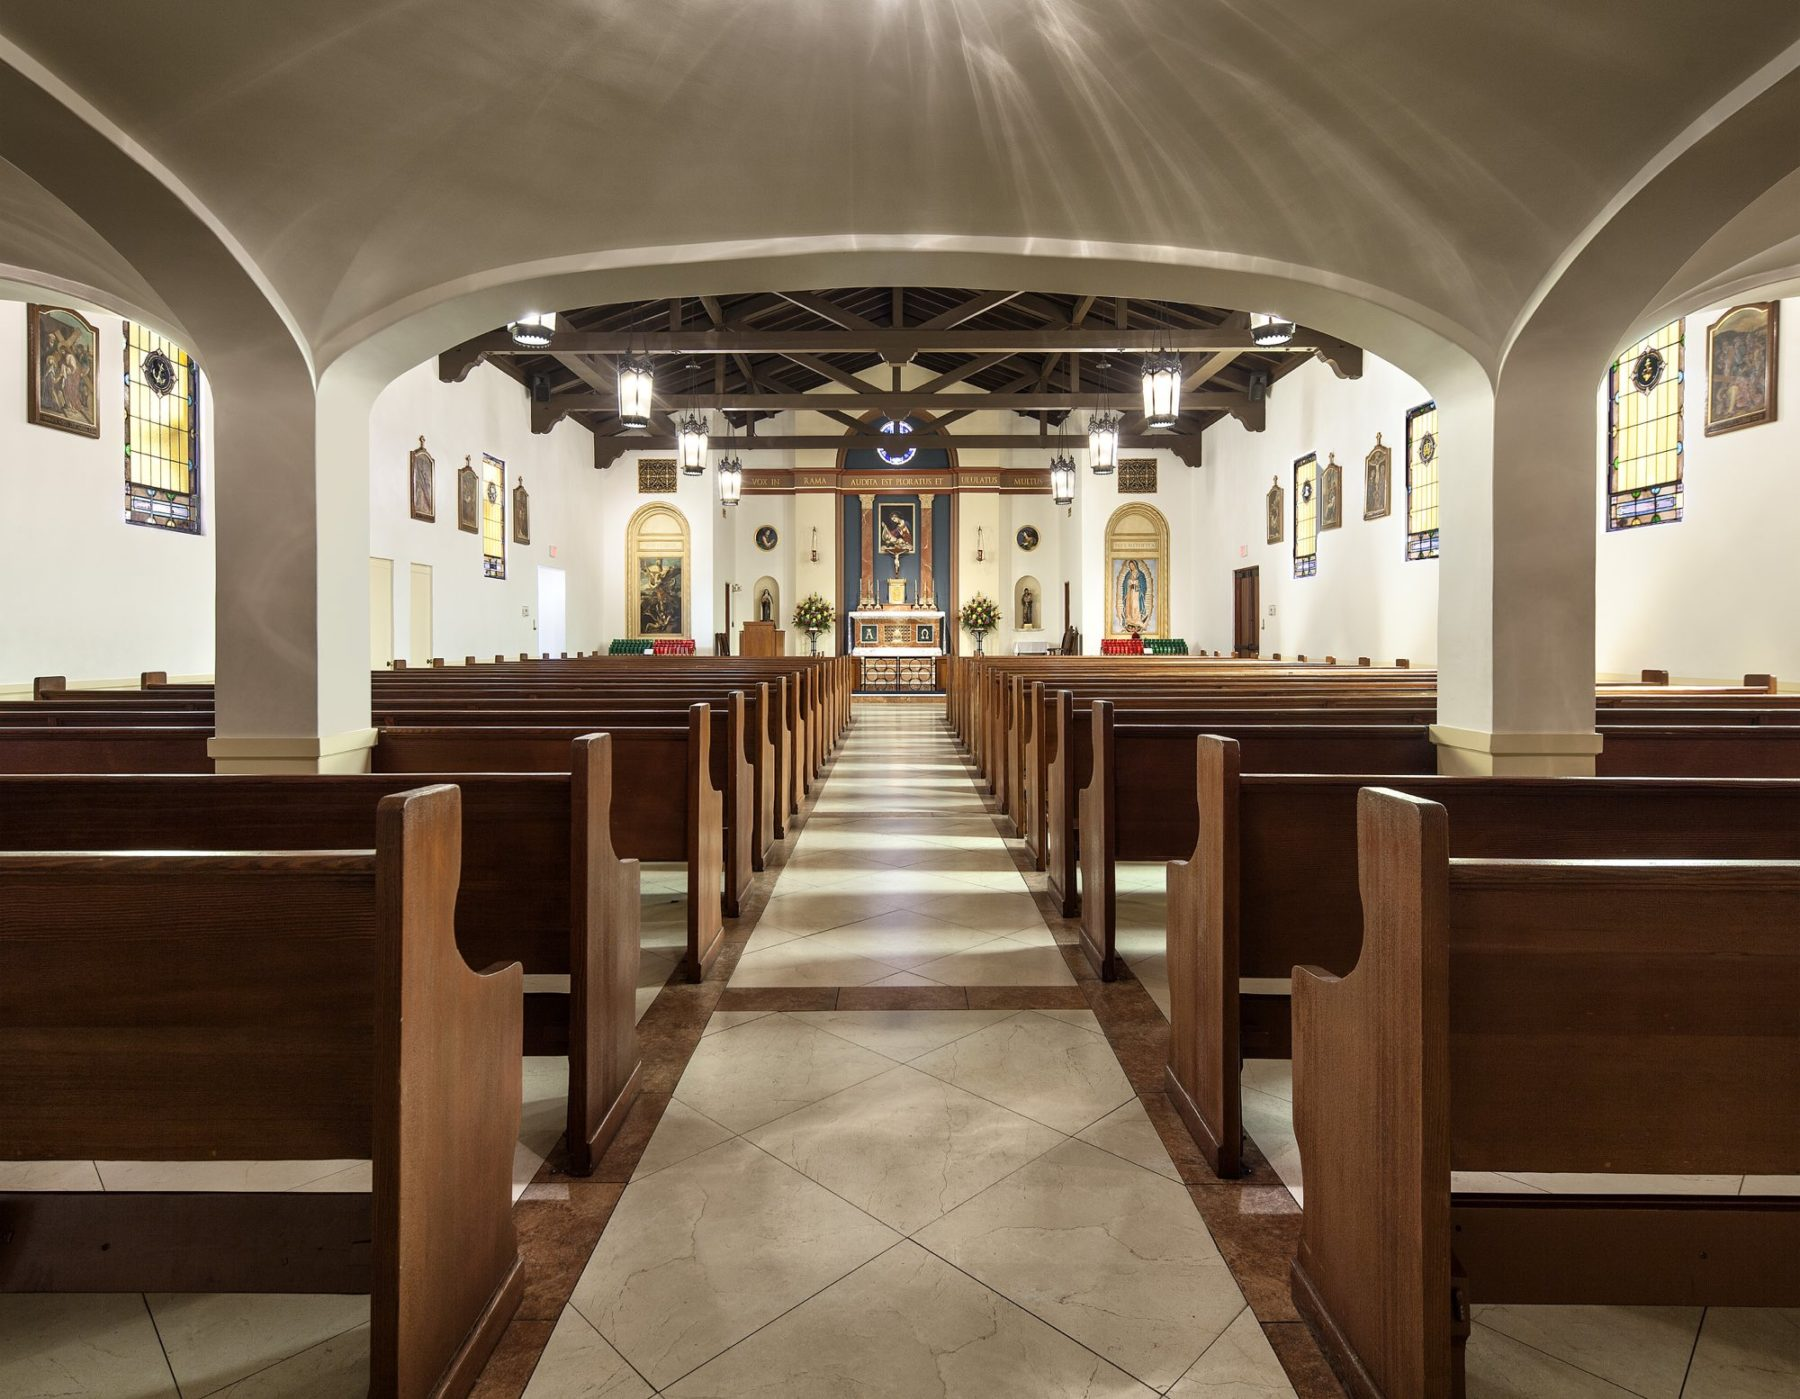 Classical nave with iron pendant hanging lanterns stations of the cross columns wooden pews stained glass by Harrison Design